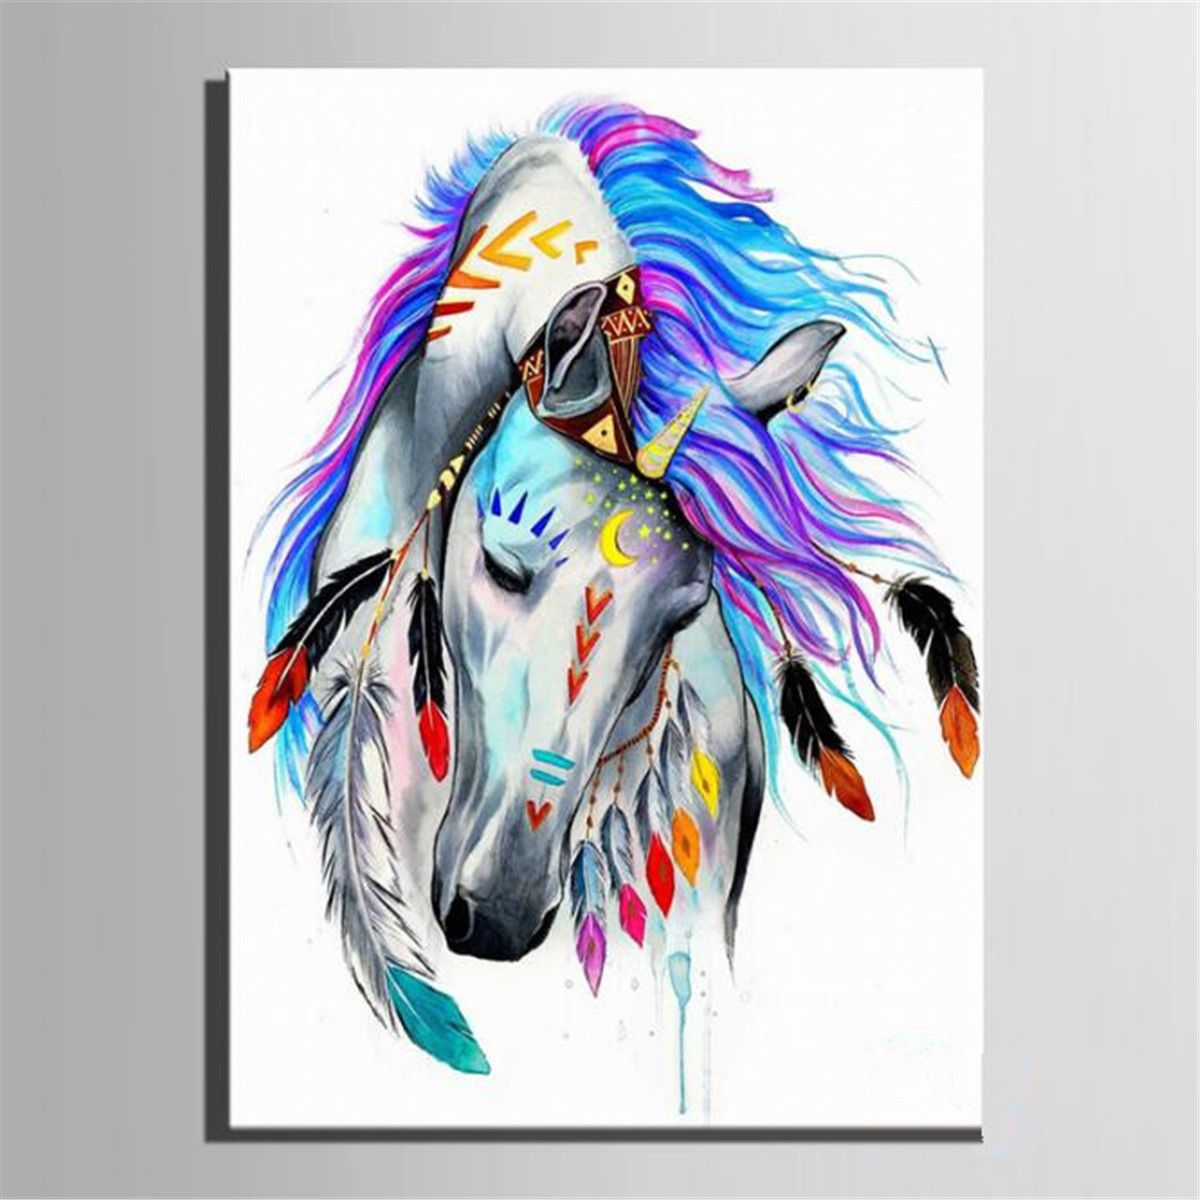 11.87 AUD Framed Indian Horse Number Kit Painting By